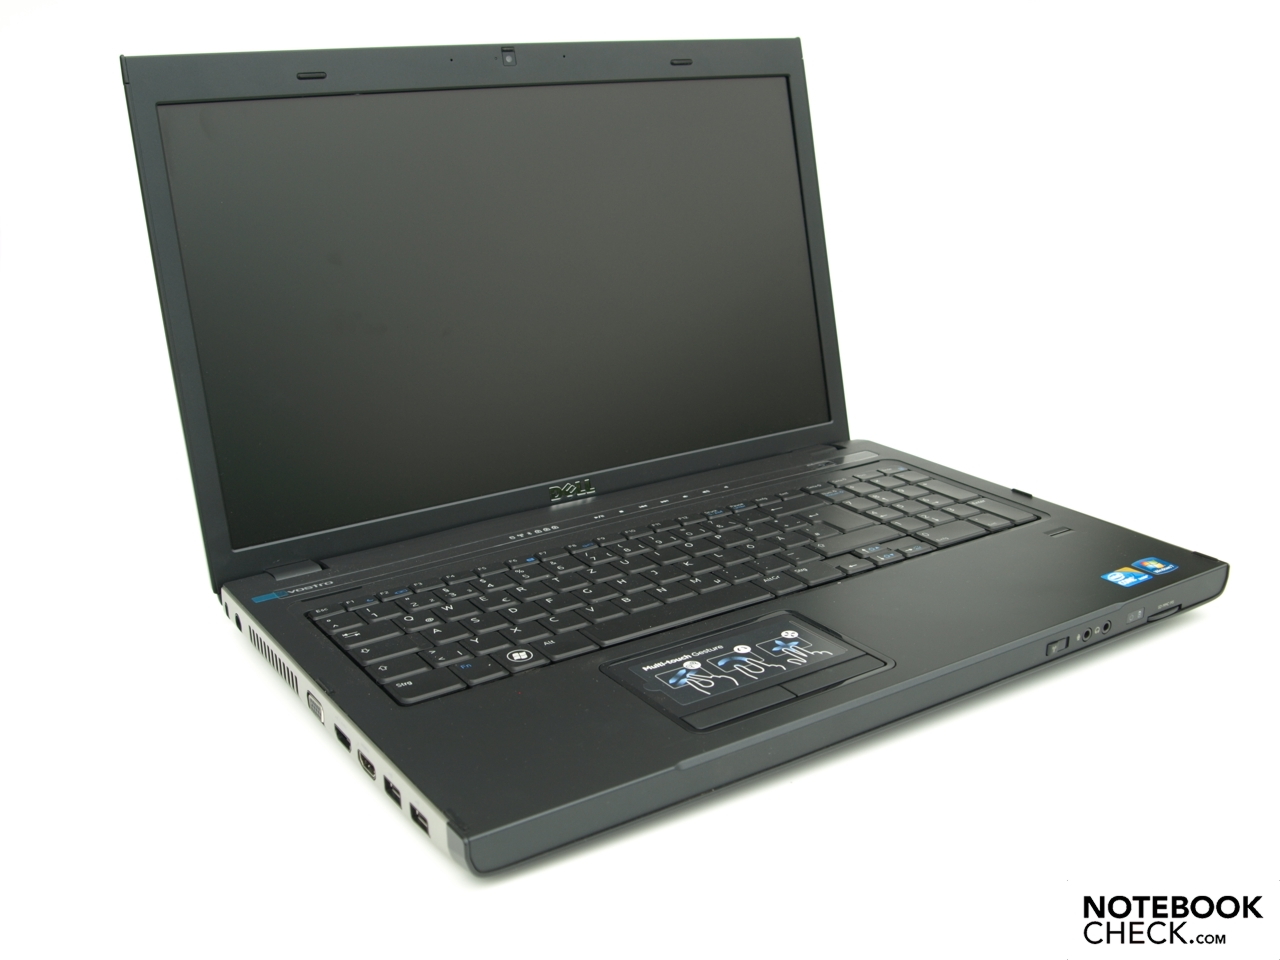 Dell Vostro 3700 Notebook IDT 92HD81B1 Audio Driver Download